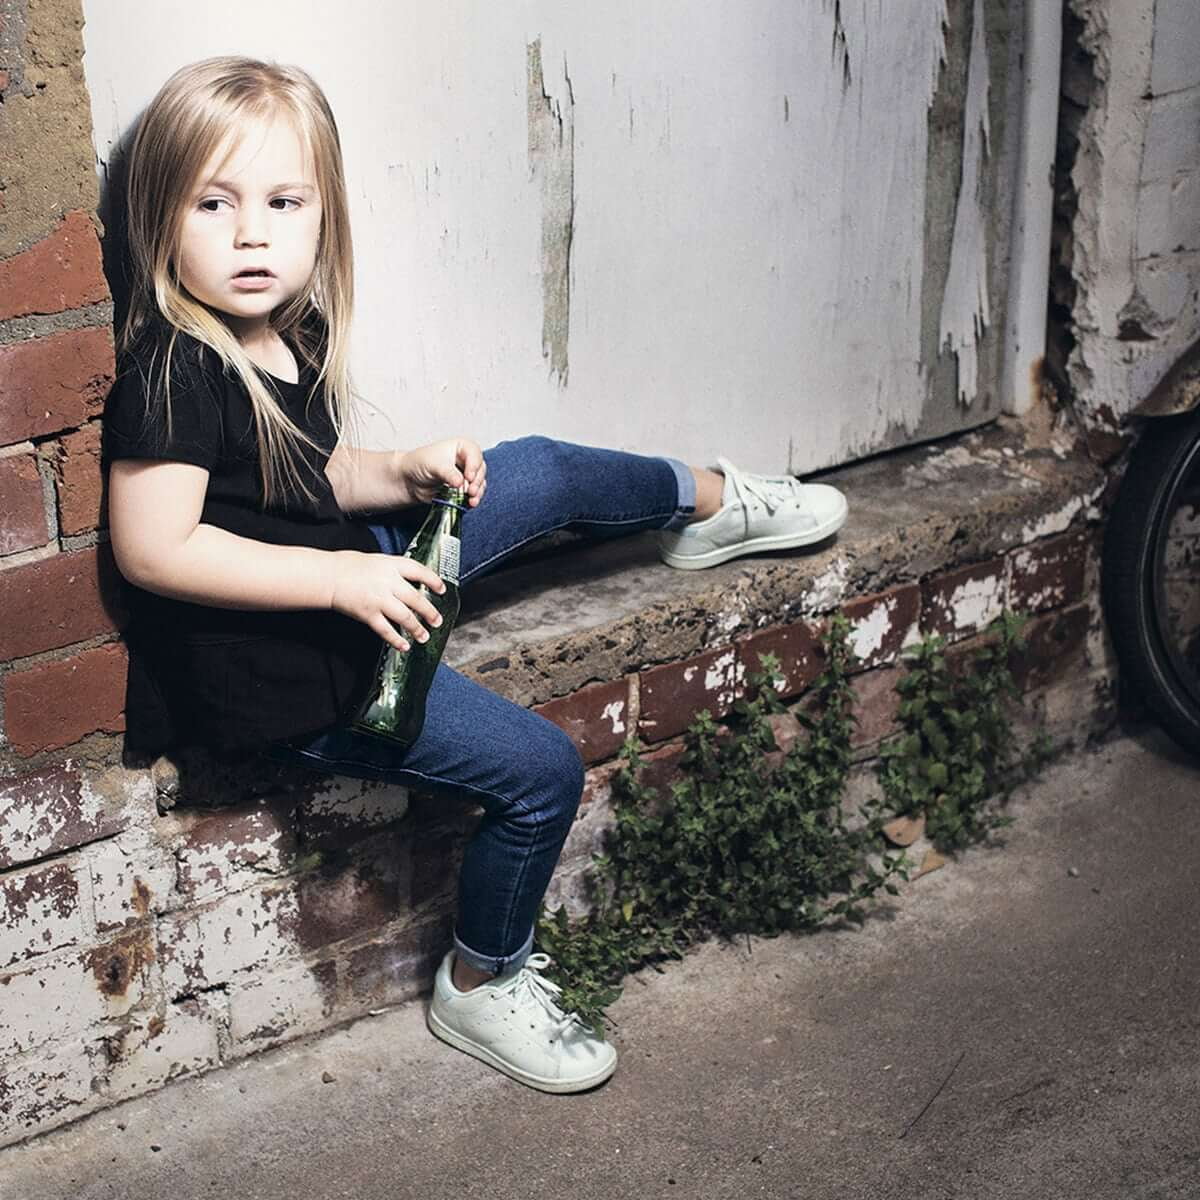 Days of Denim - Kids Skinny Jeans - Navy Wash - Lifestyle 1